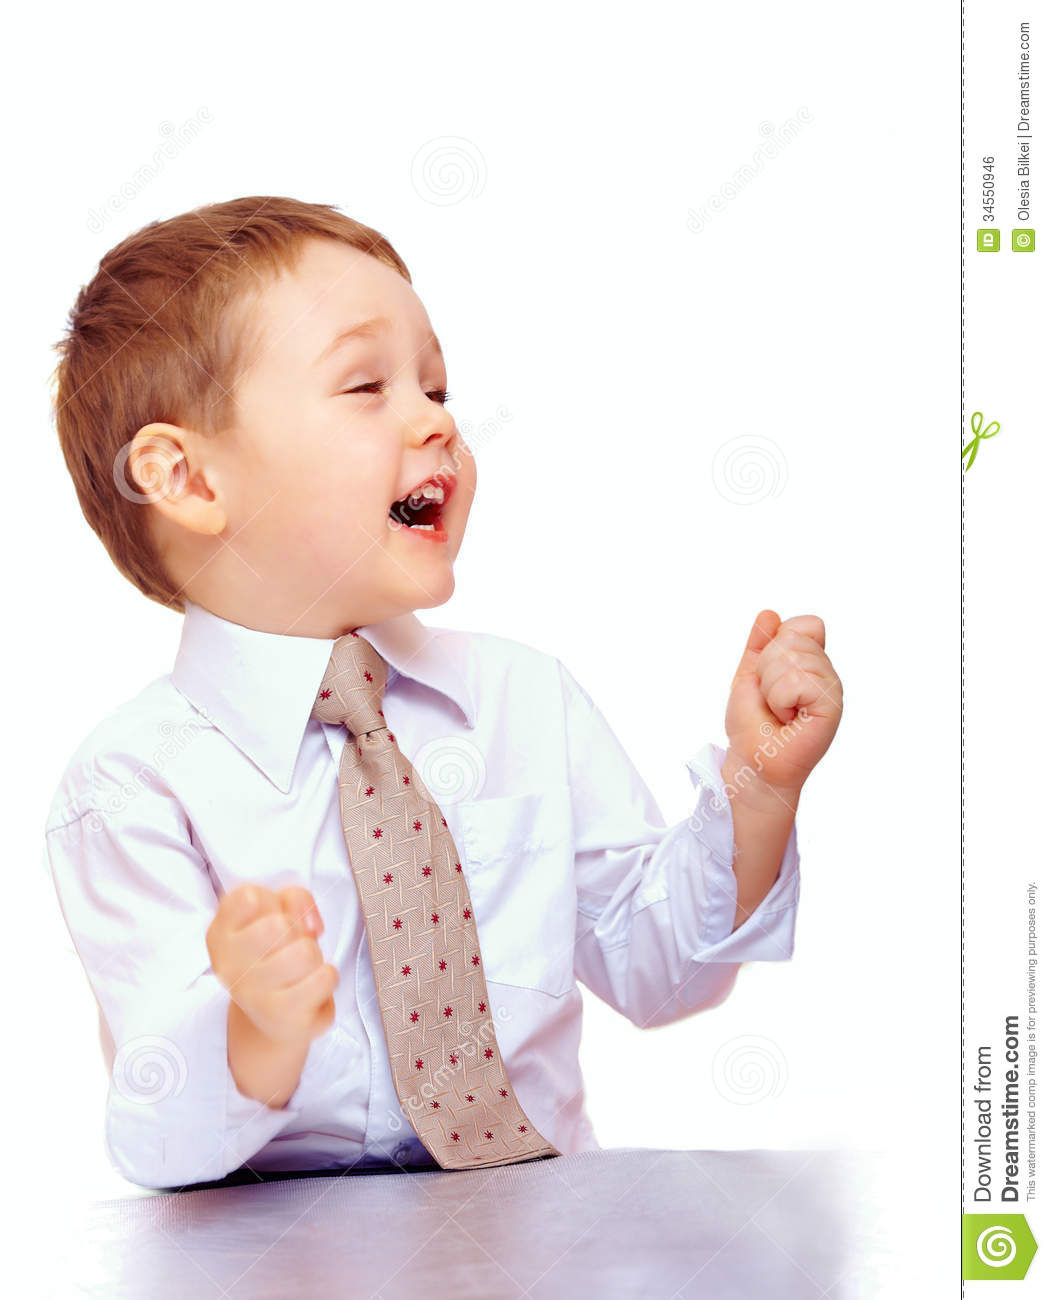 Successful Business Child Expressing Positivity Stock